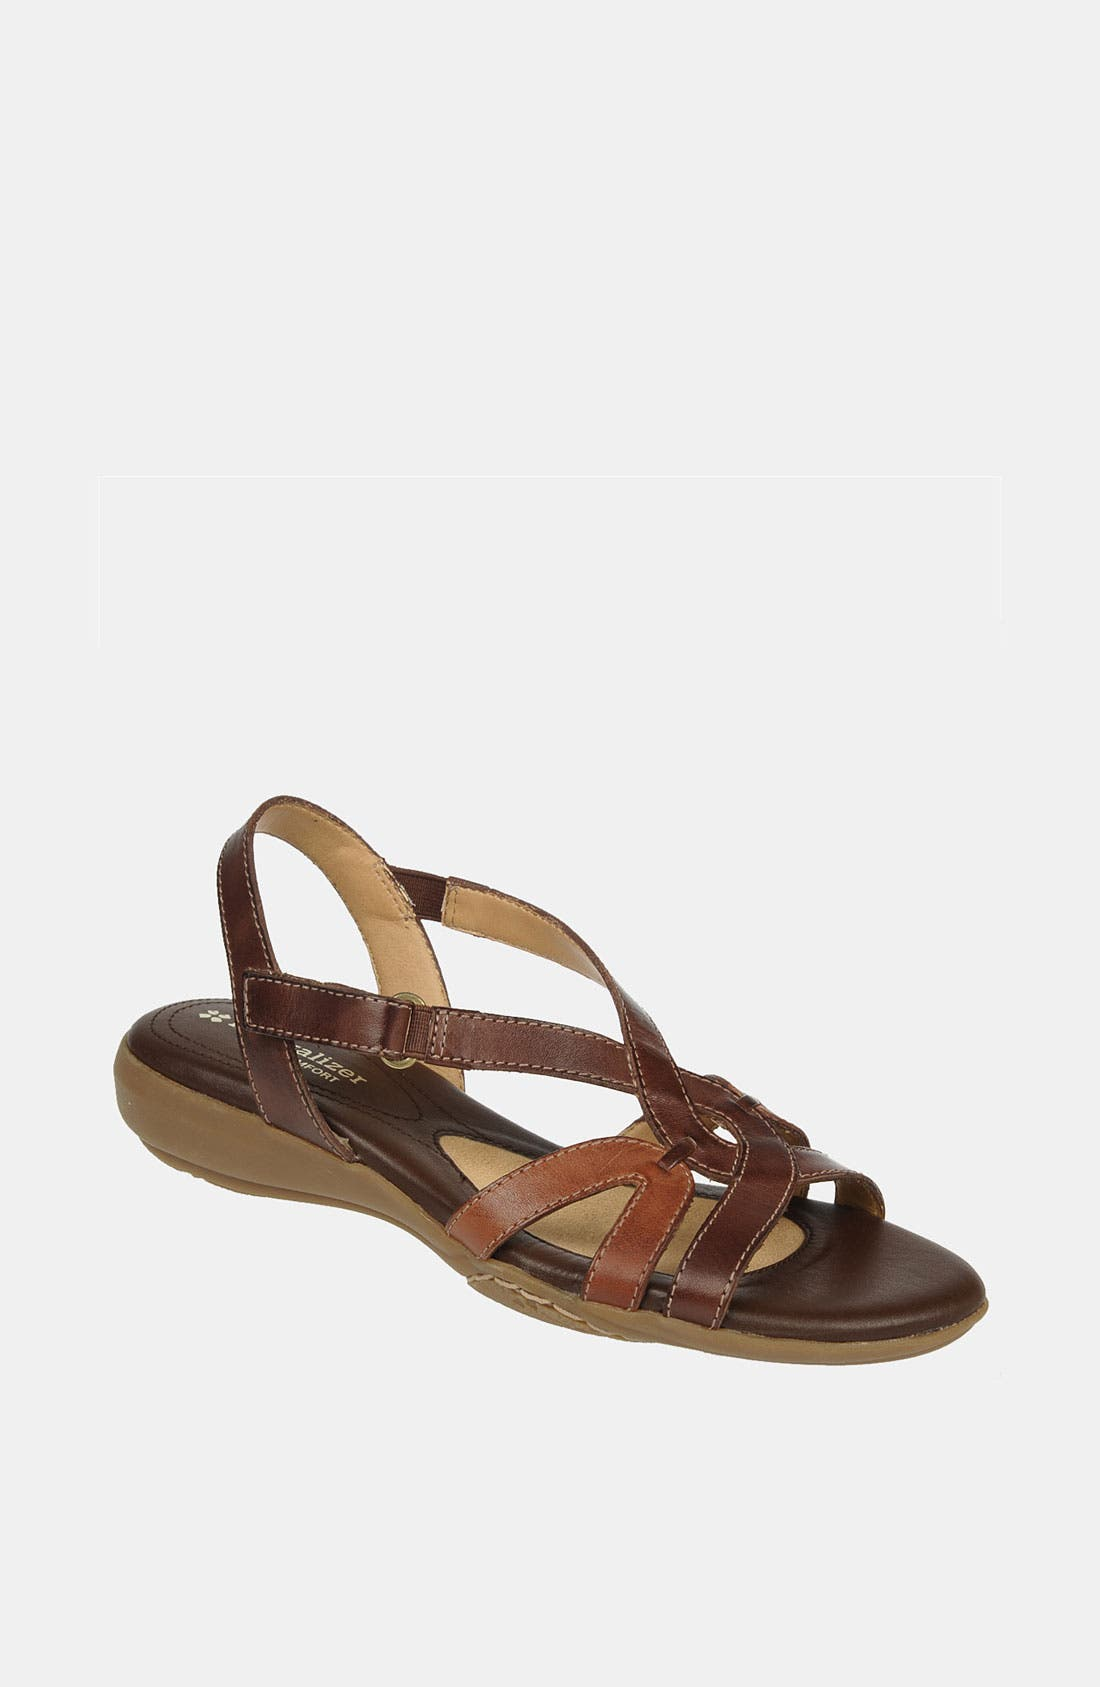 Alternate Image 1 Selected - Naturalizer 'Cooper' Sandal